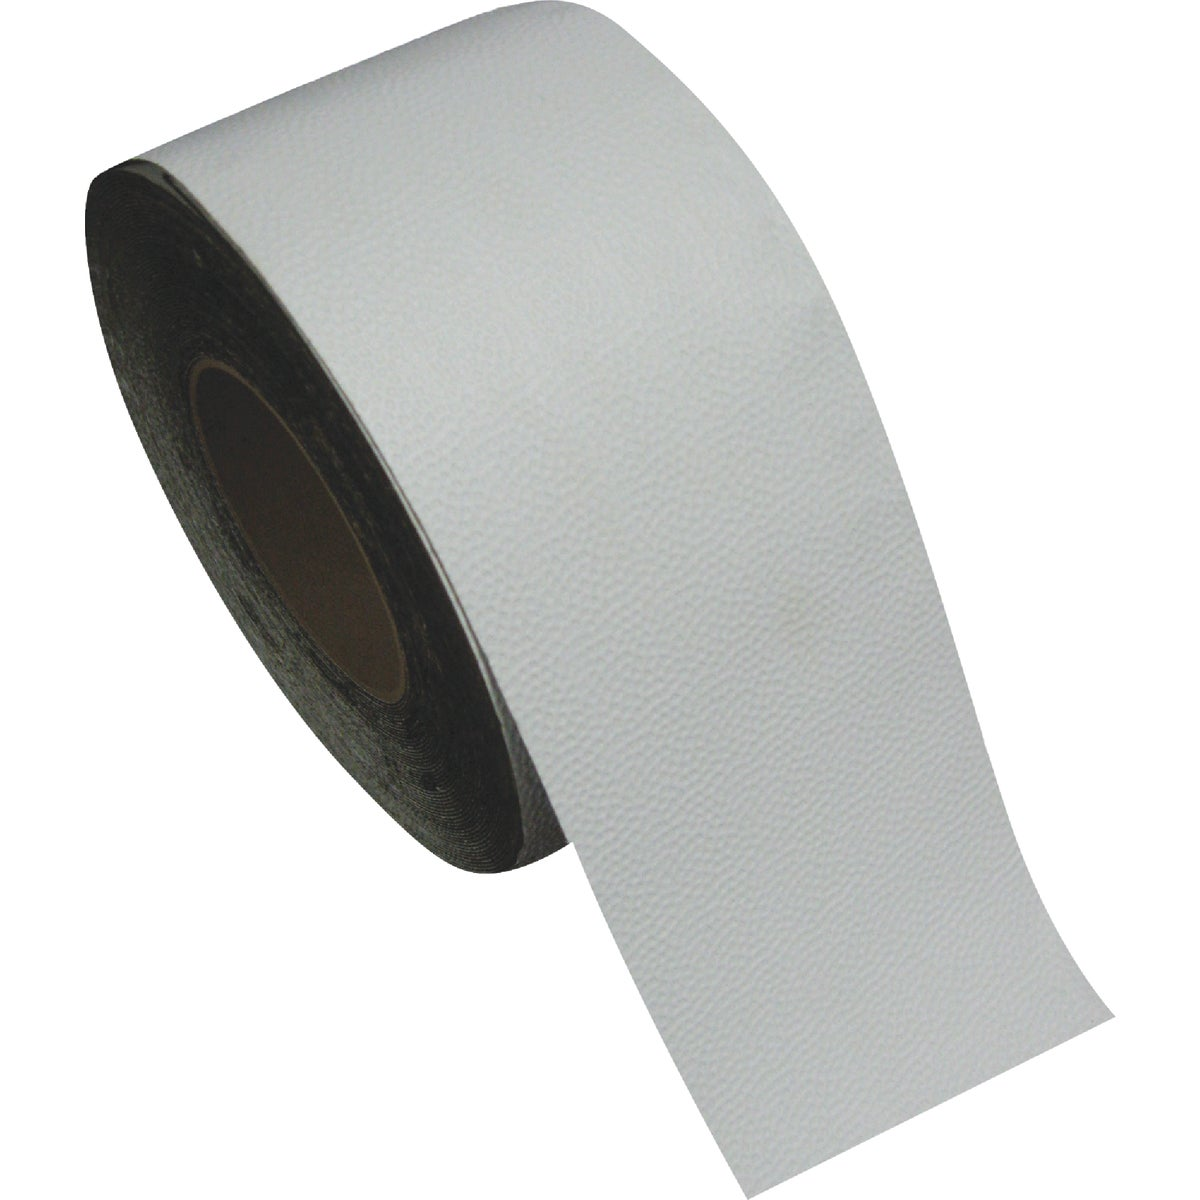 "4""X75' WINDOW SEAL TAPE - 45W304 by M F M Bldg Prod Corp"